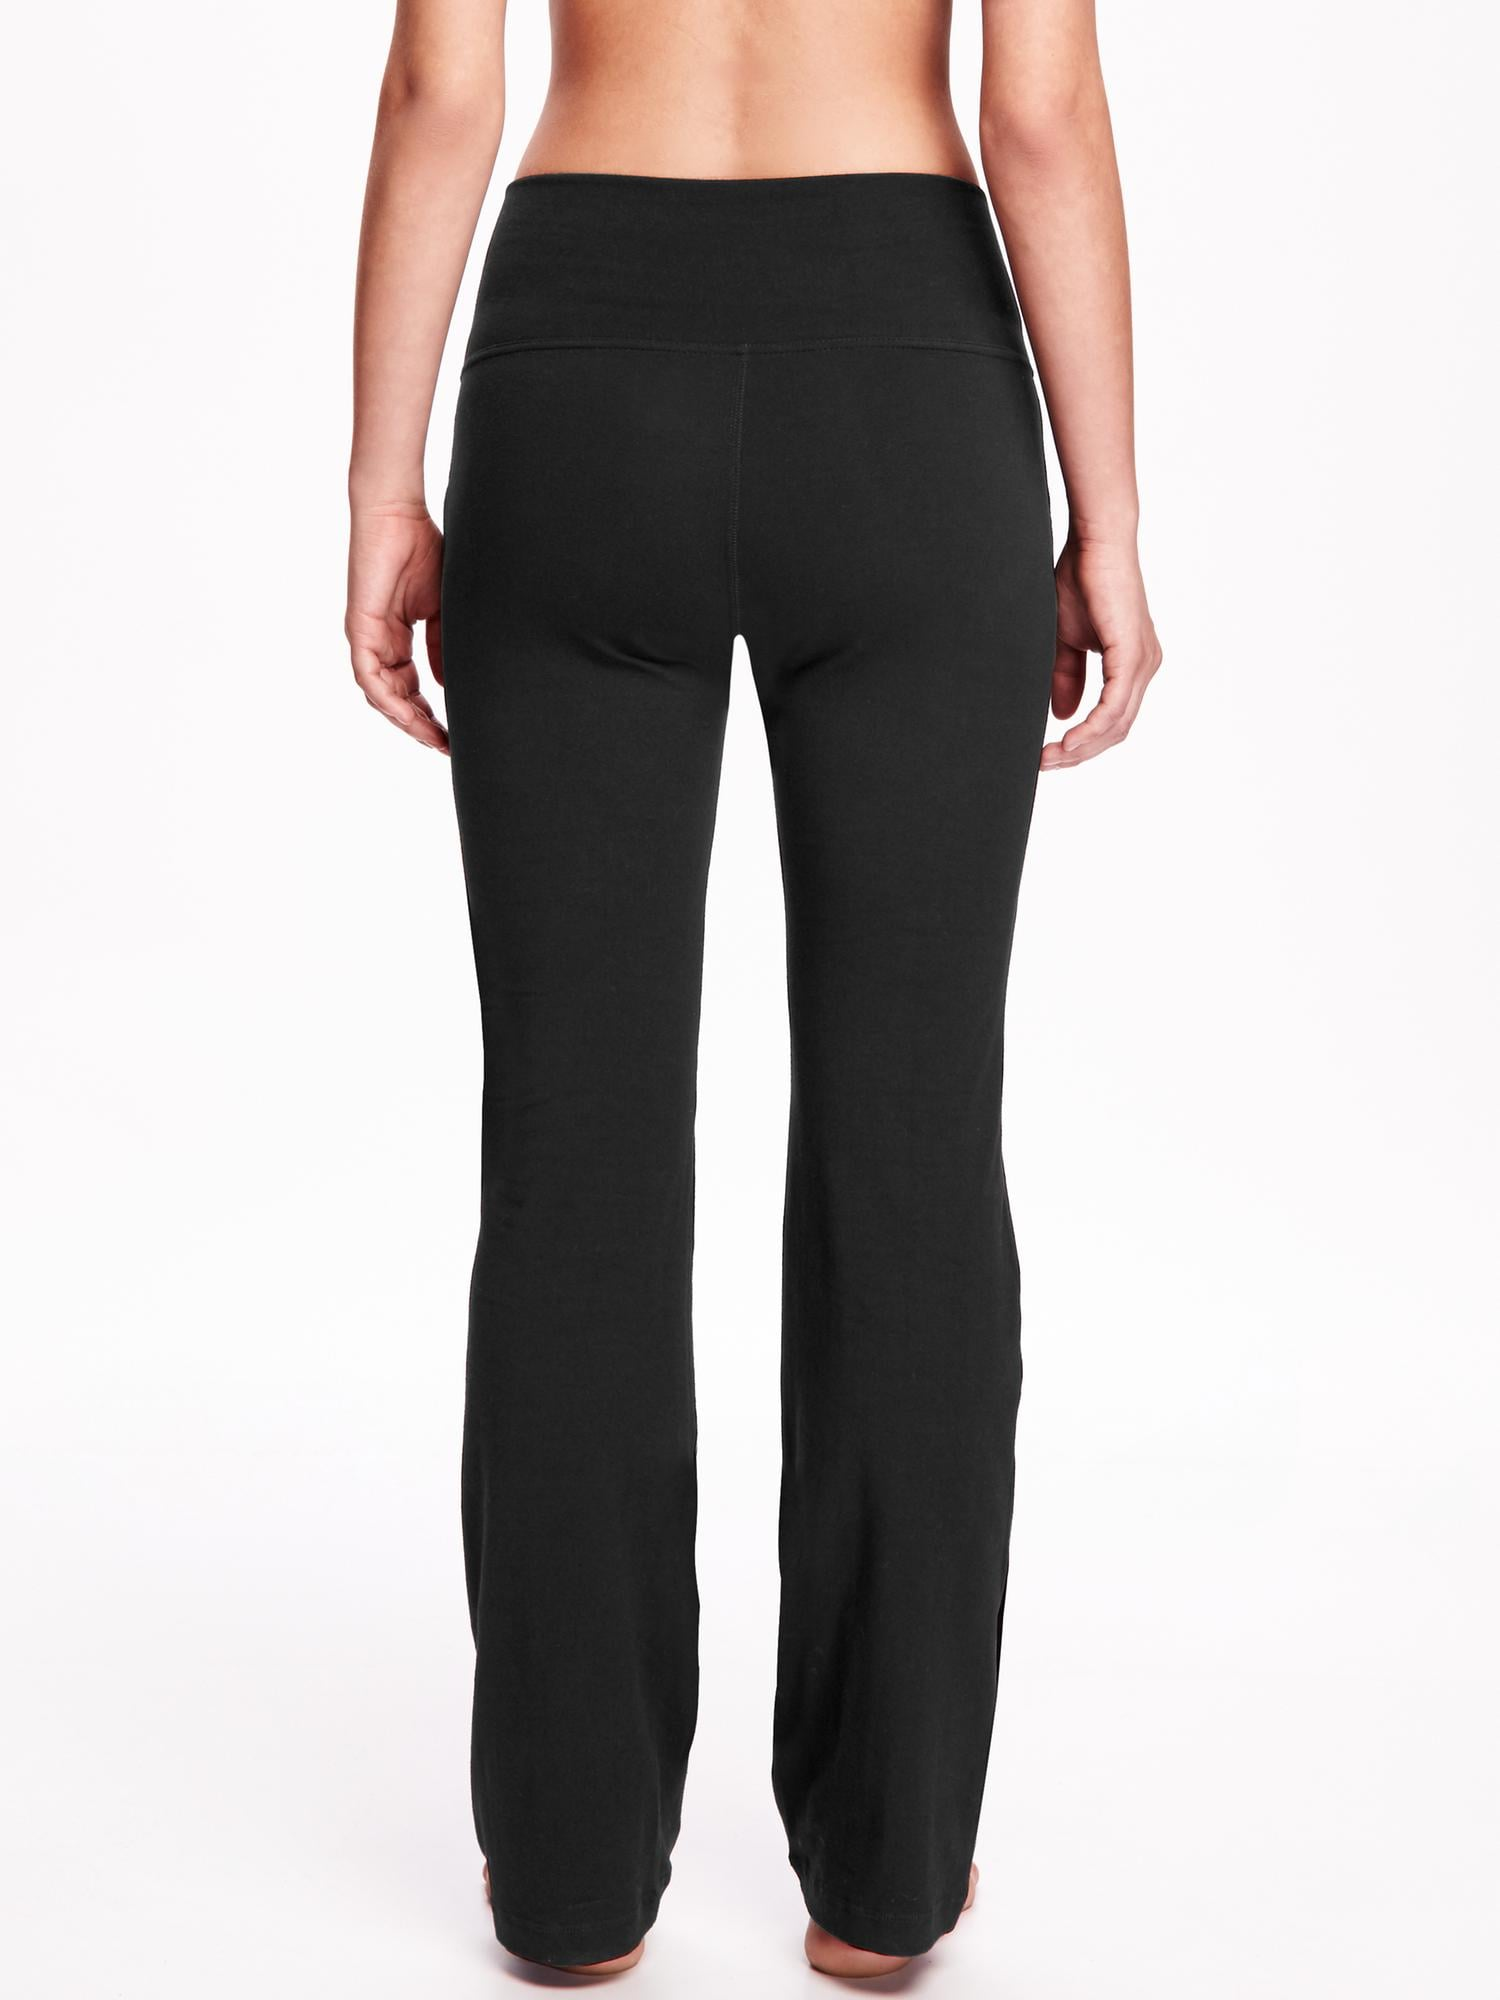 High-Rise Yoga Pants for Women | Old Navy